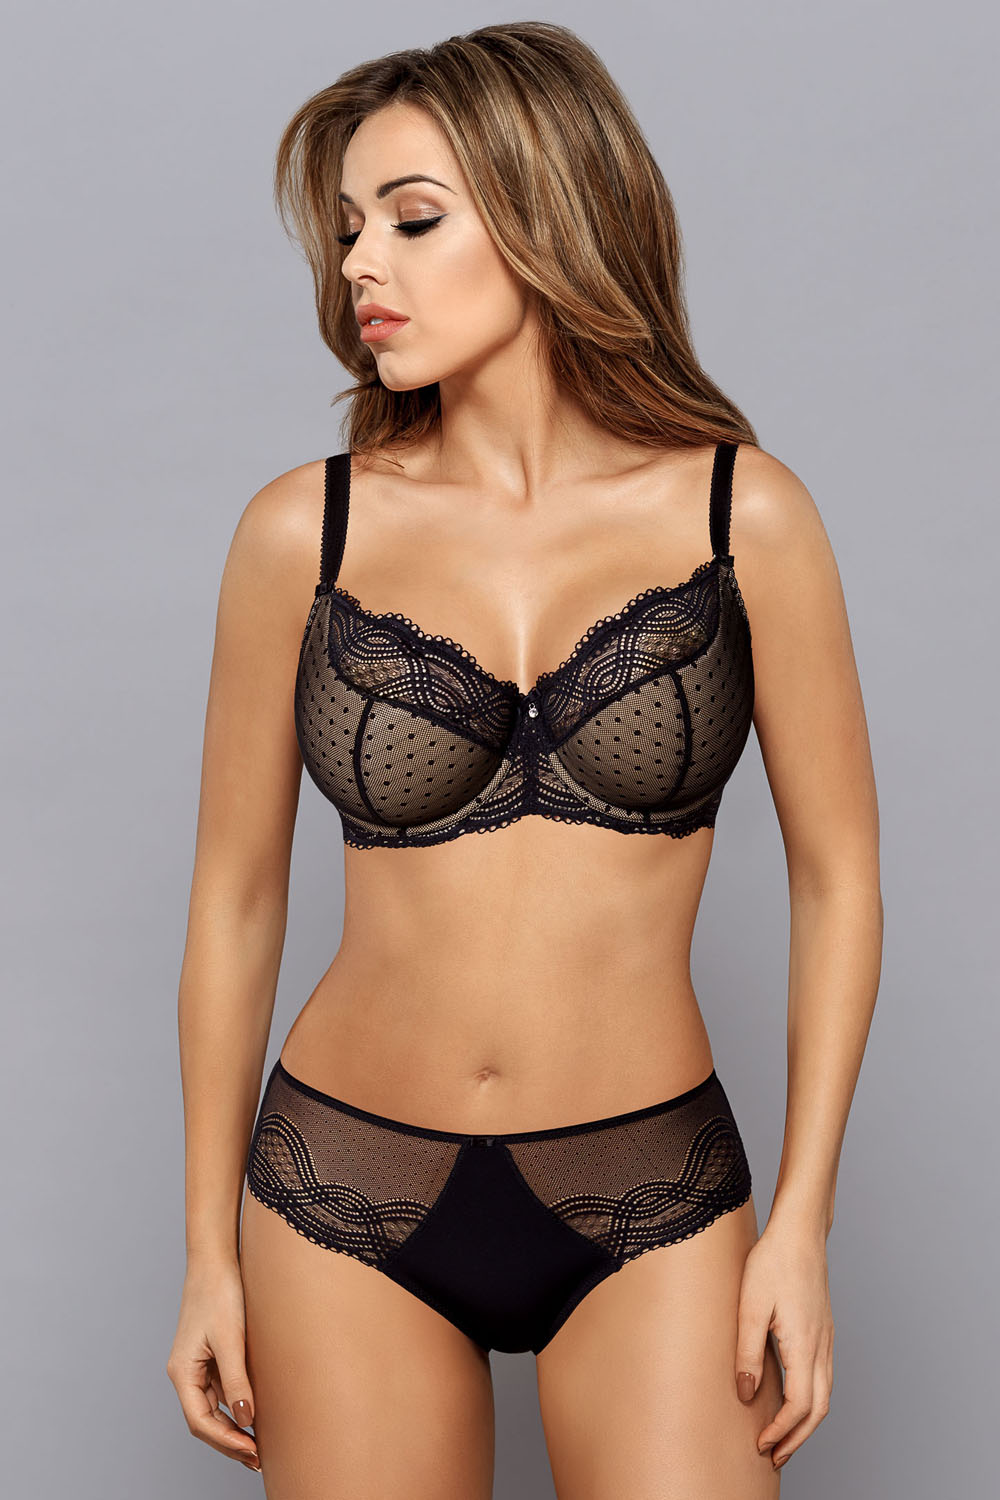 Gaia 669 Annie underwired semi padded bra lace dots matching bottoms available